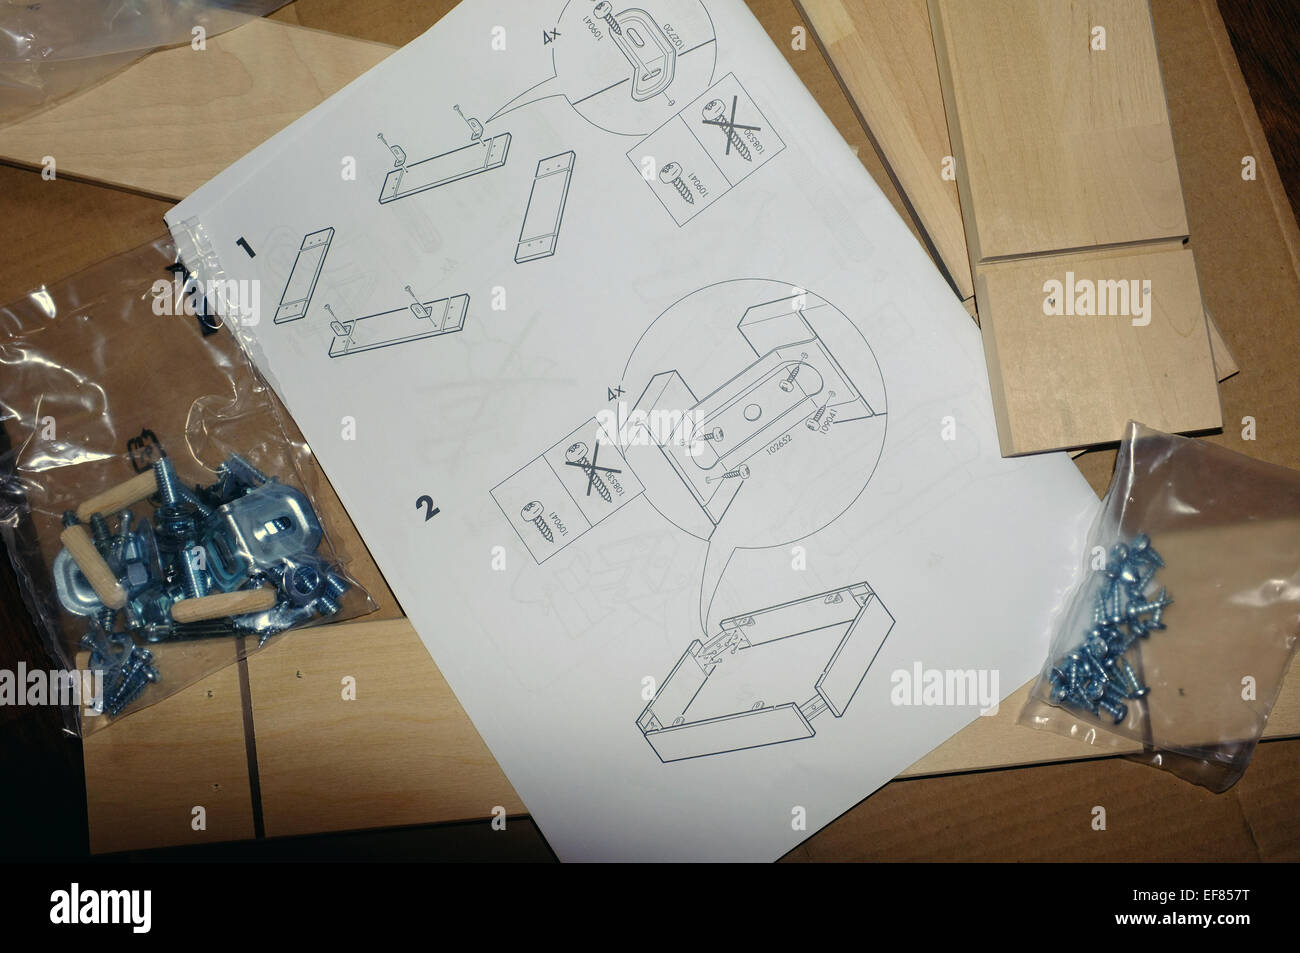 A Sheet Of Ikea Furniture Assembly Instructions Next To Assembly Equipment.